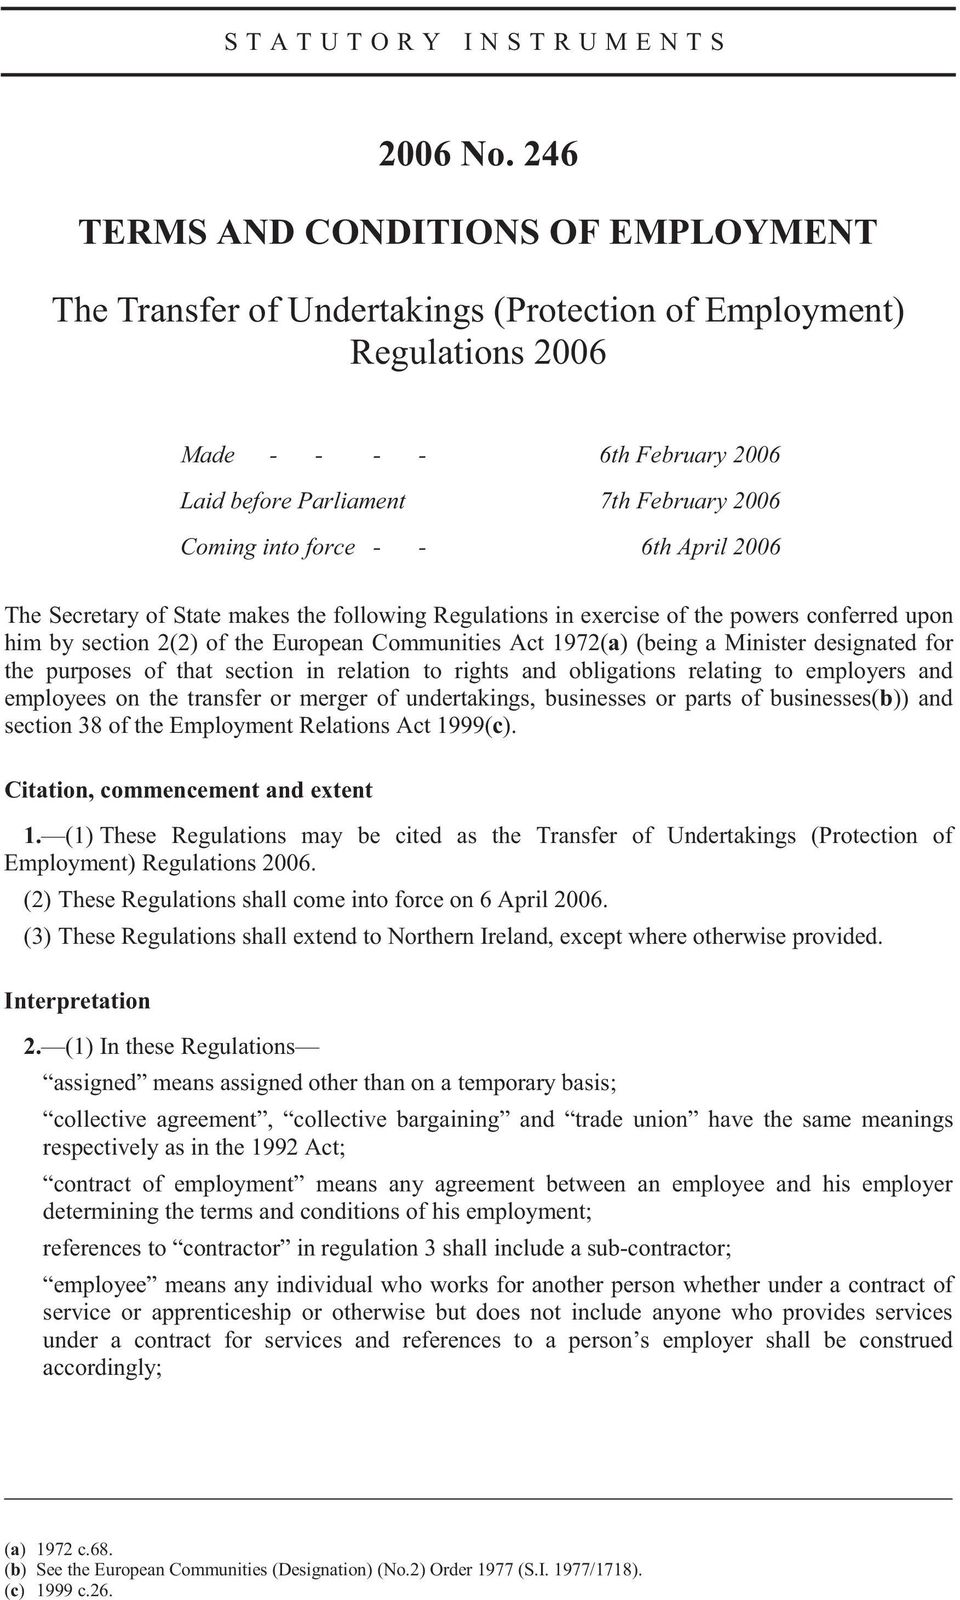 force - - 6th April 2006 The Secretary of State makes the following Regulations in exercise of the powers conferred upon him by section 2(2) of the European Communities Act 1972(a) (being a Minister